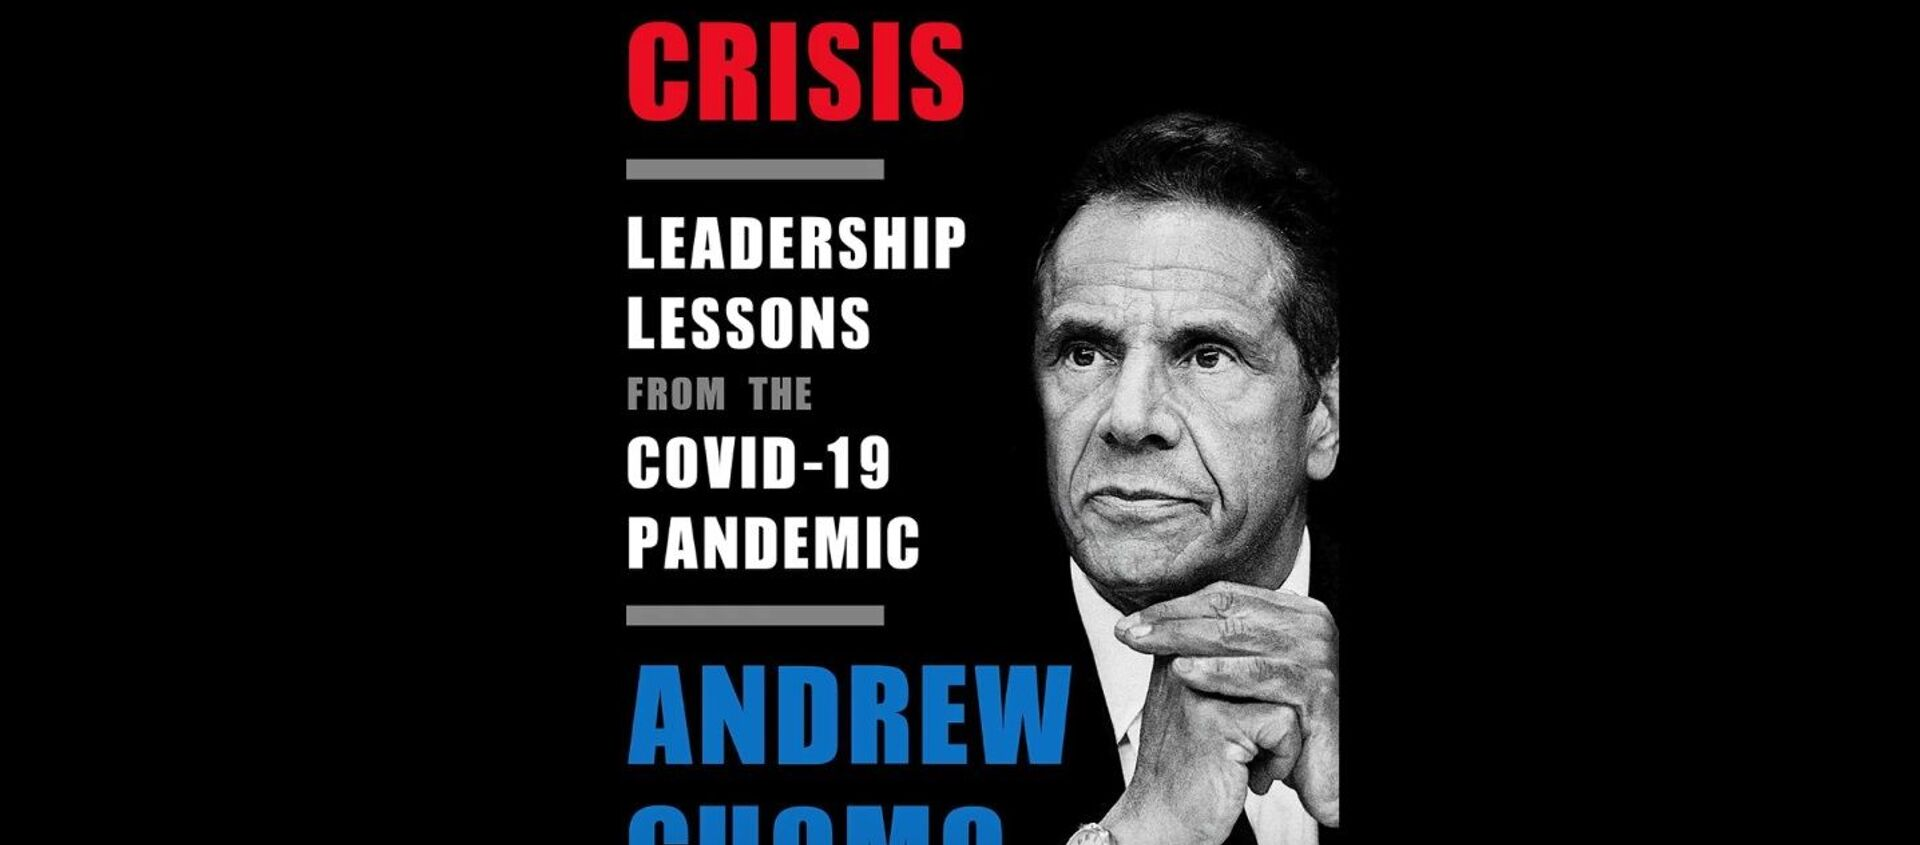 American Crisis | Leadership Lessons from the COVID-19 Pandemic | Andrew Cuomo - Sputnik International, 1920, 18.05.2021